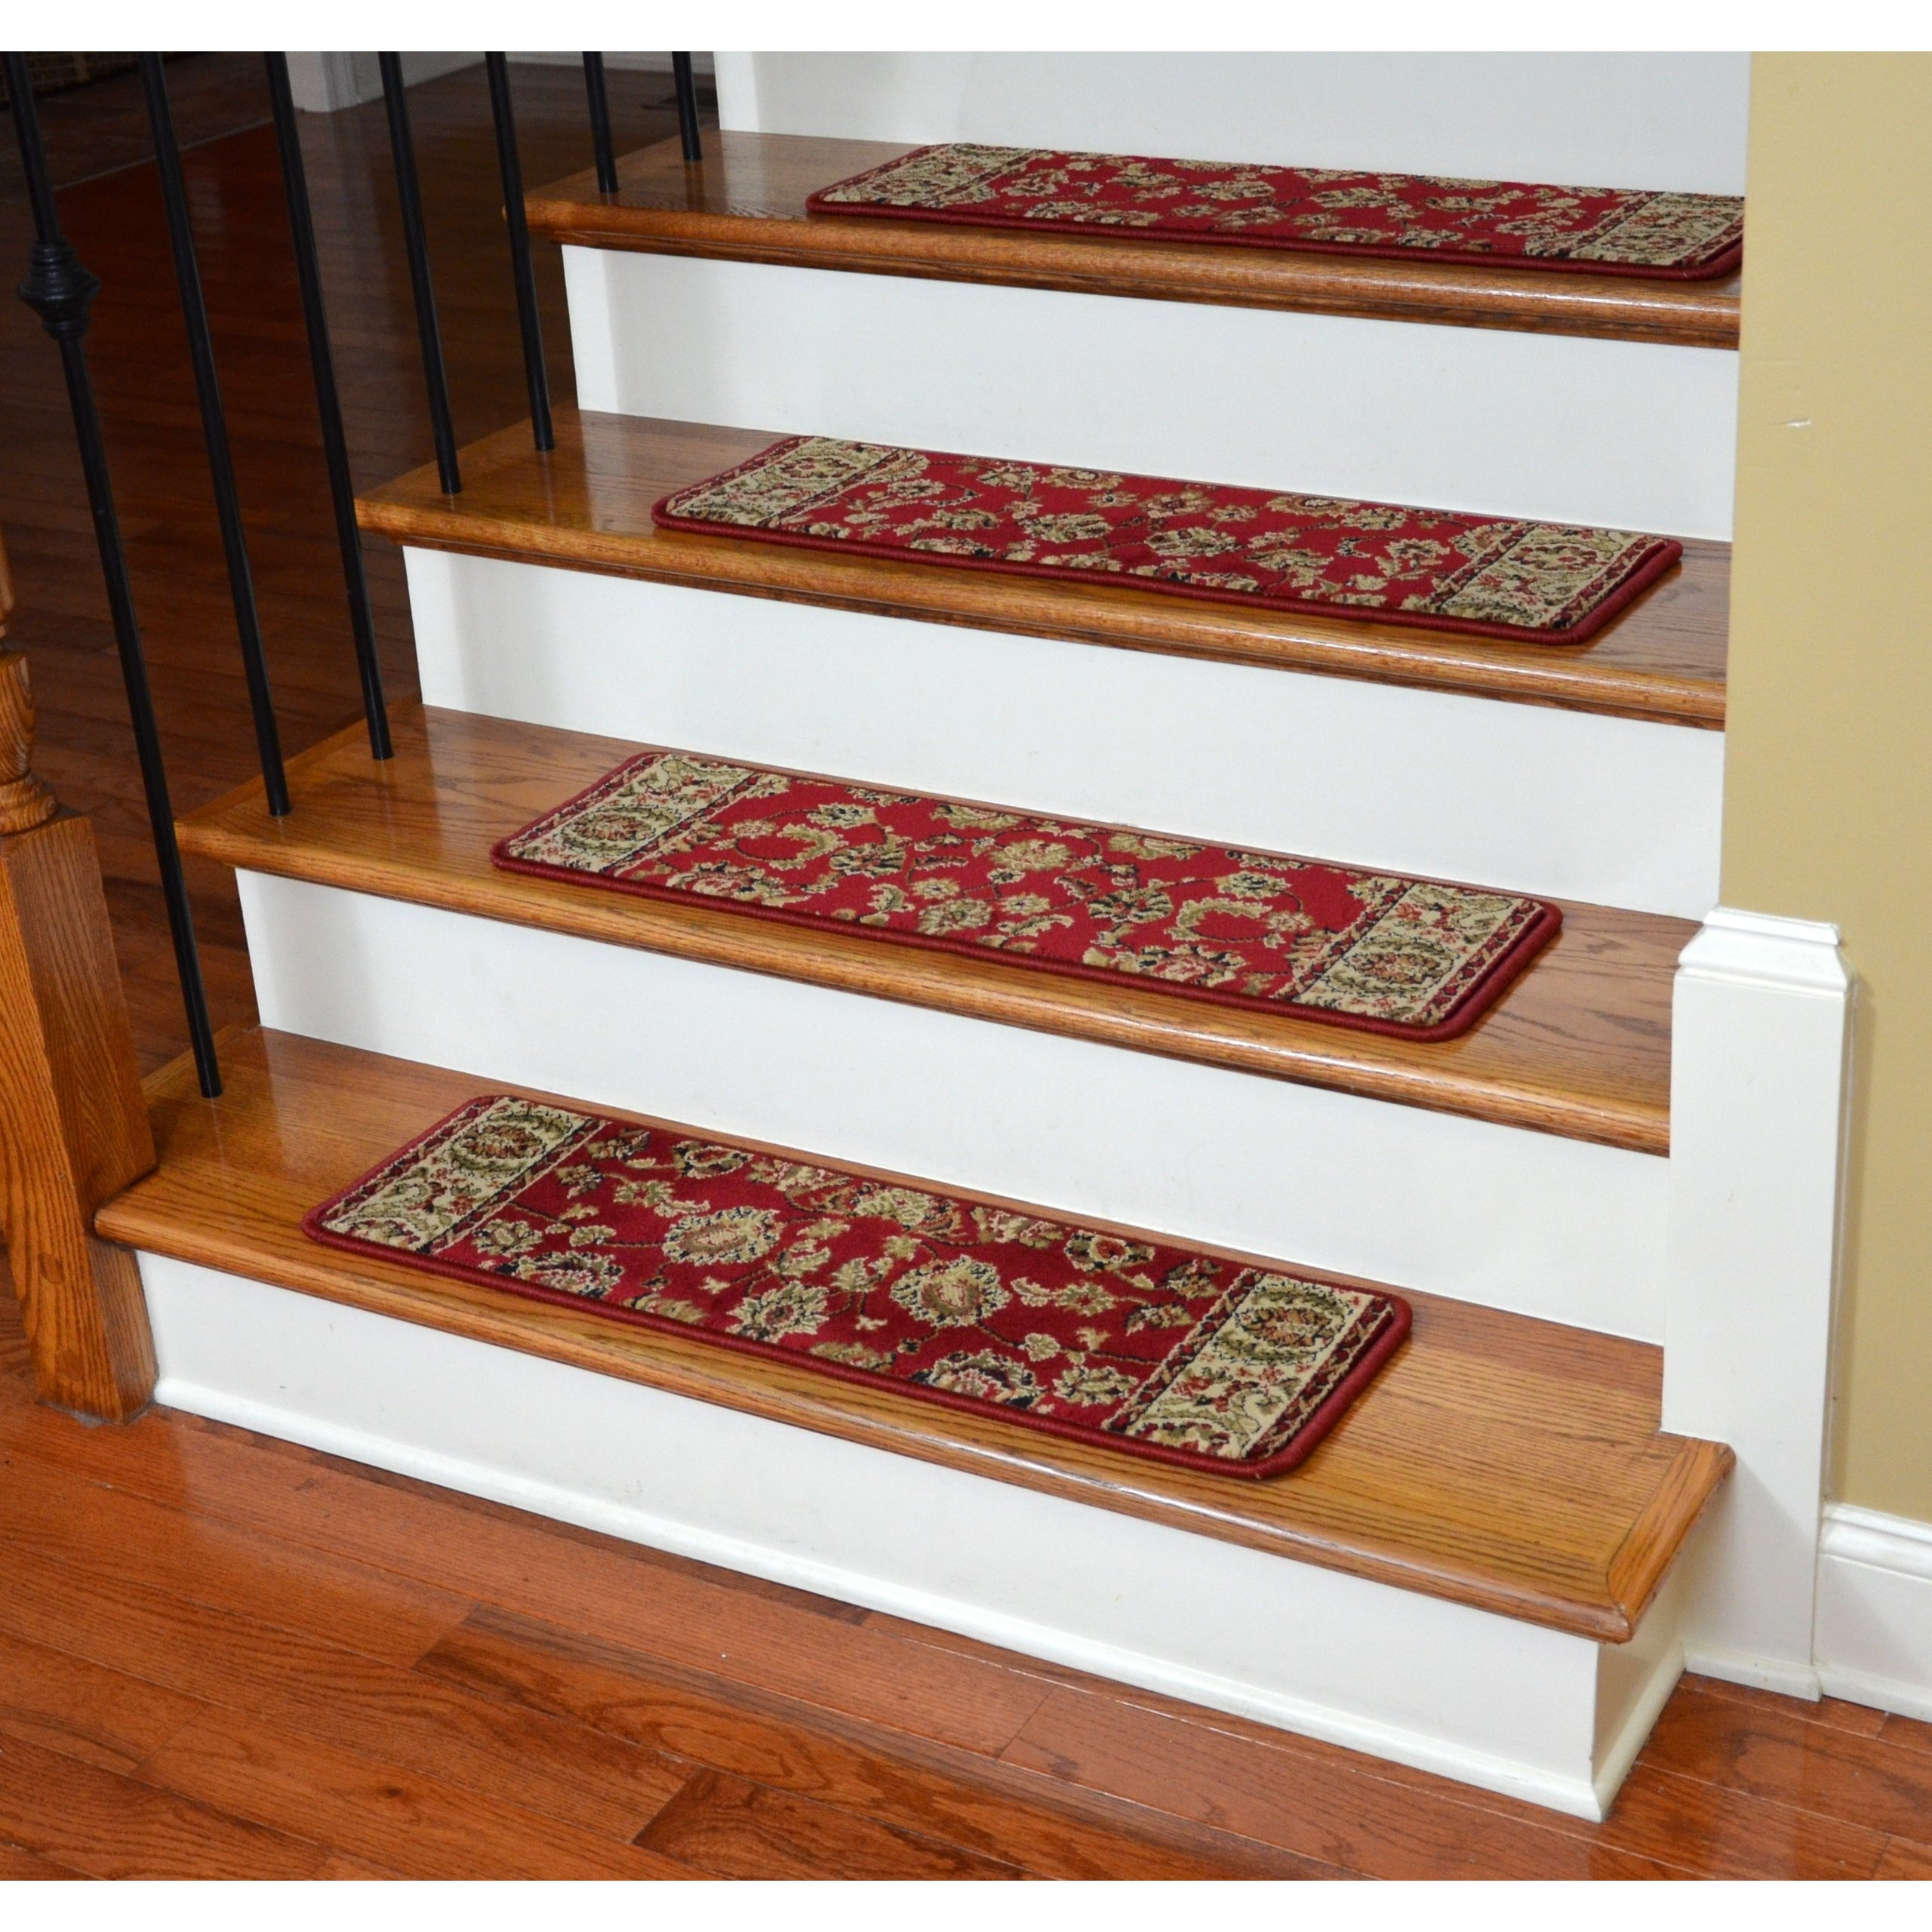 Dean Flooring Company Dean Premium Carpet Stair Treads Elegant Regarding Premium Carpet Stair Treads (Image 6 of 15)